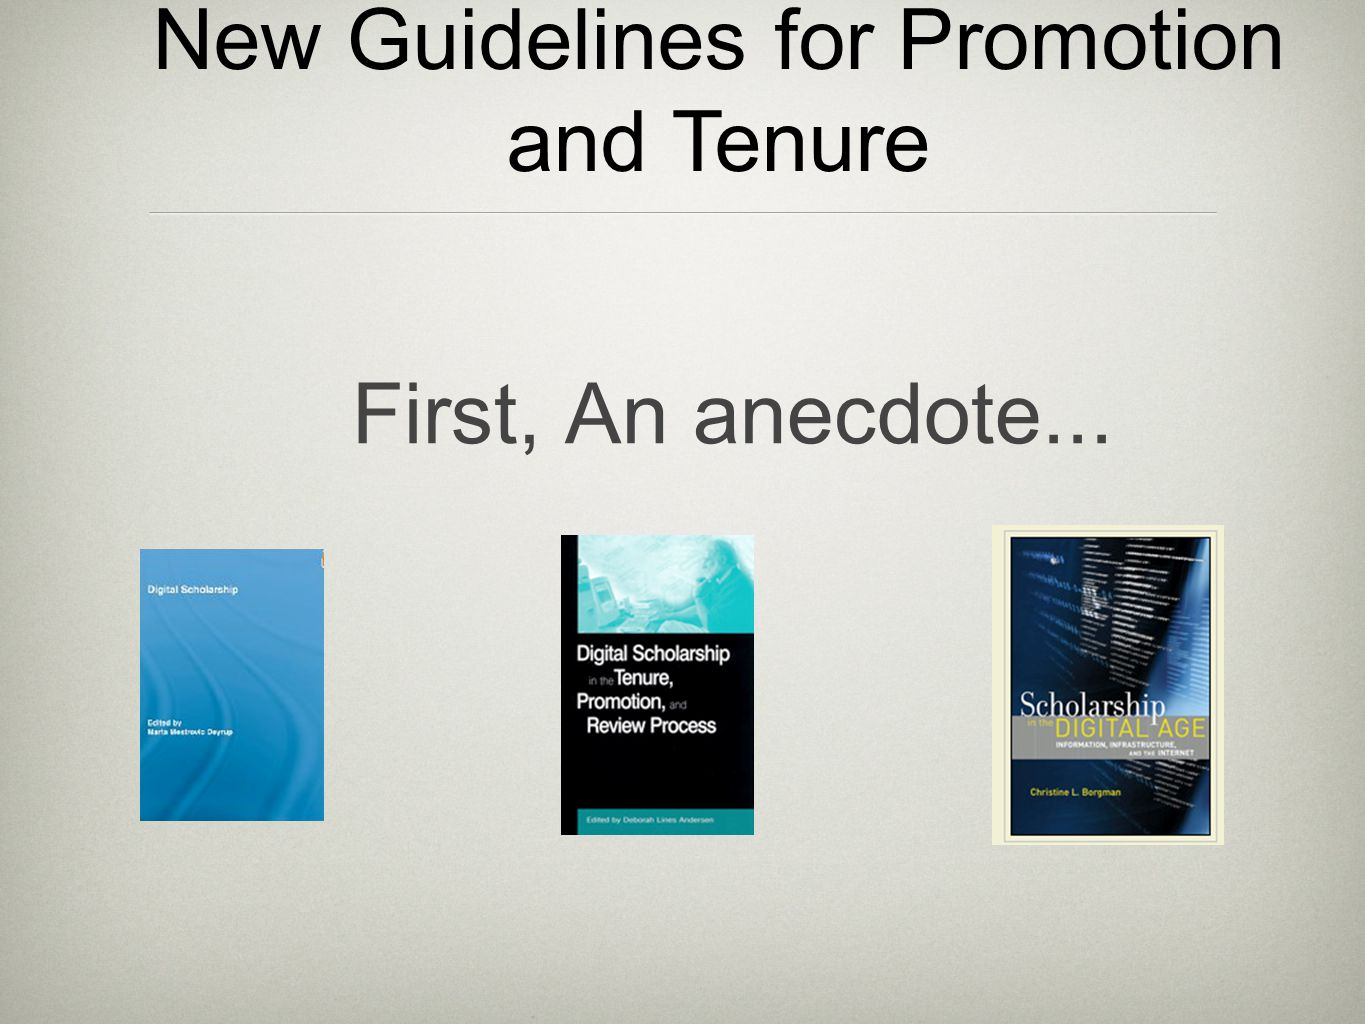 First, An anecdote... New Guidelines for Promotion and Tenure